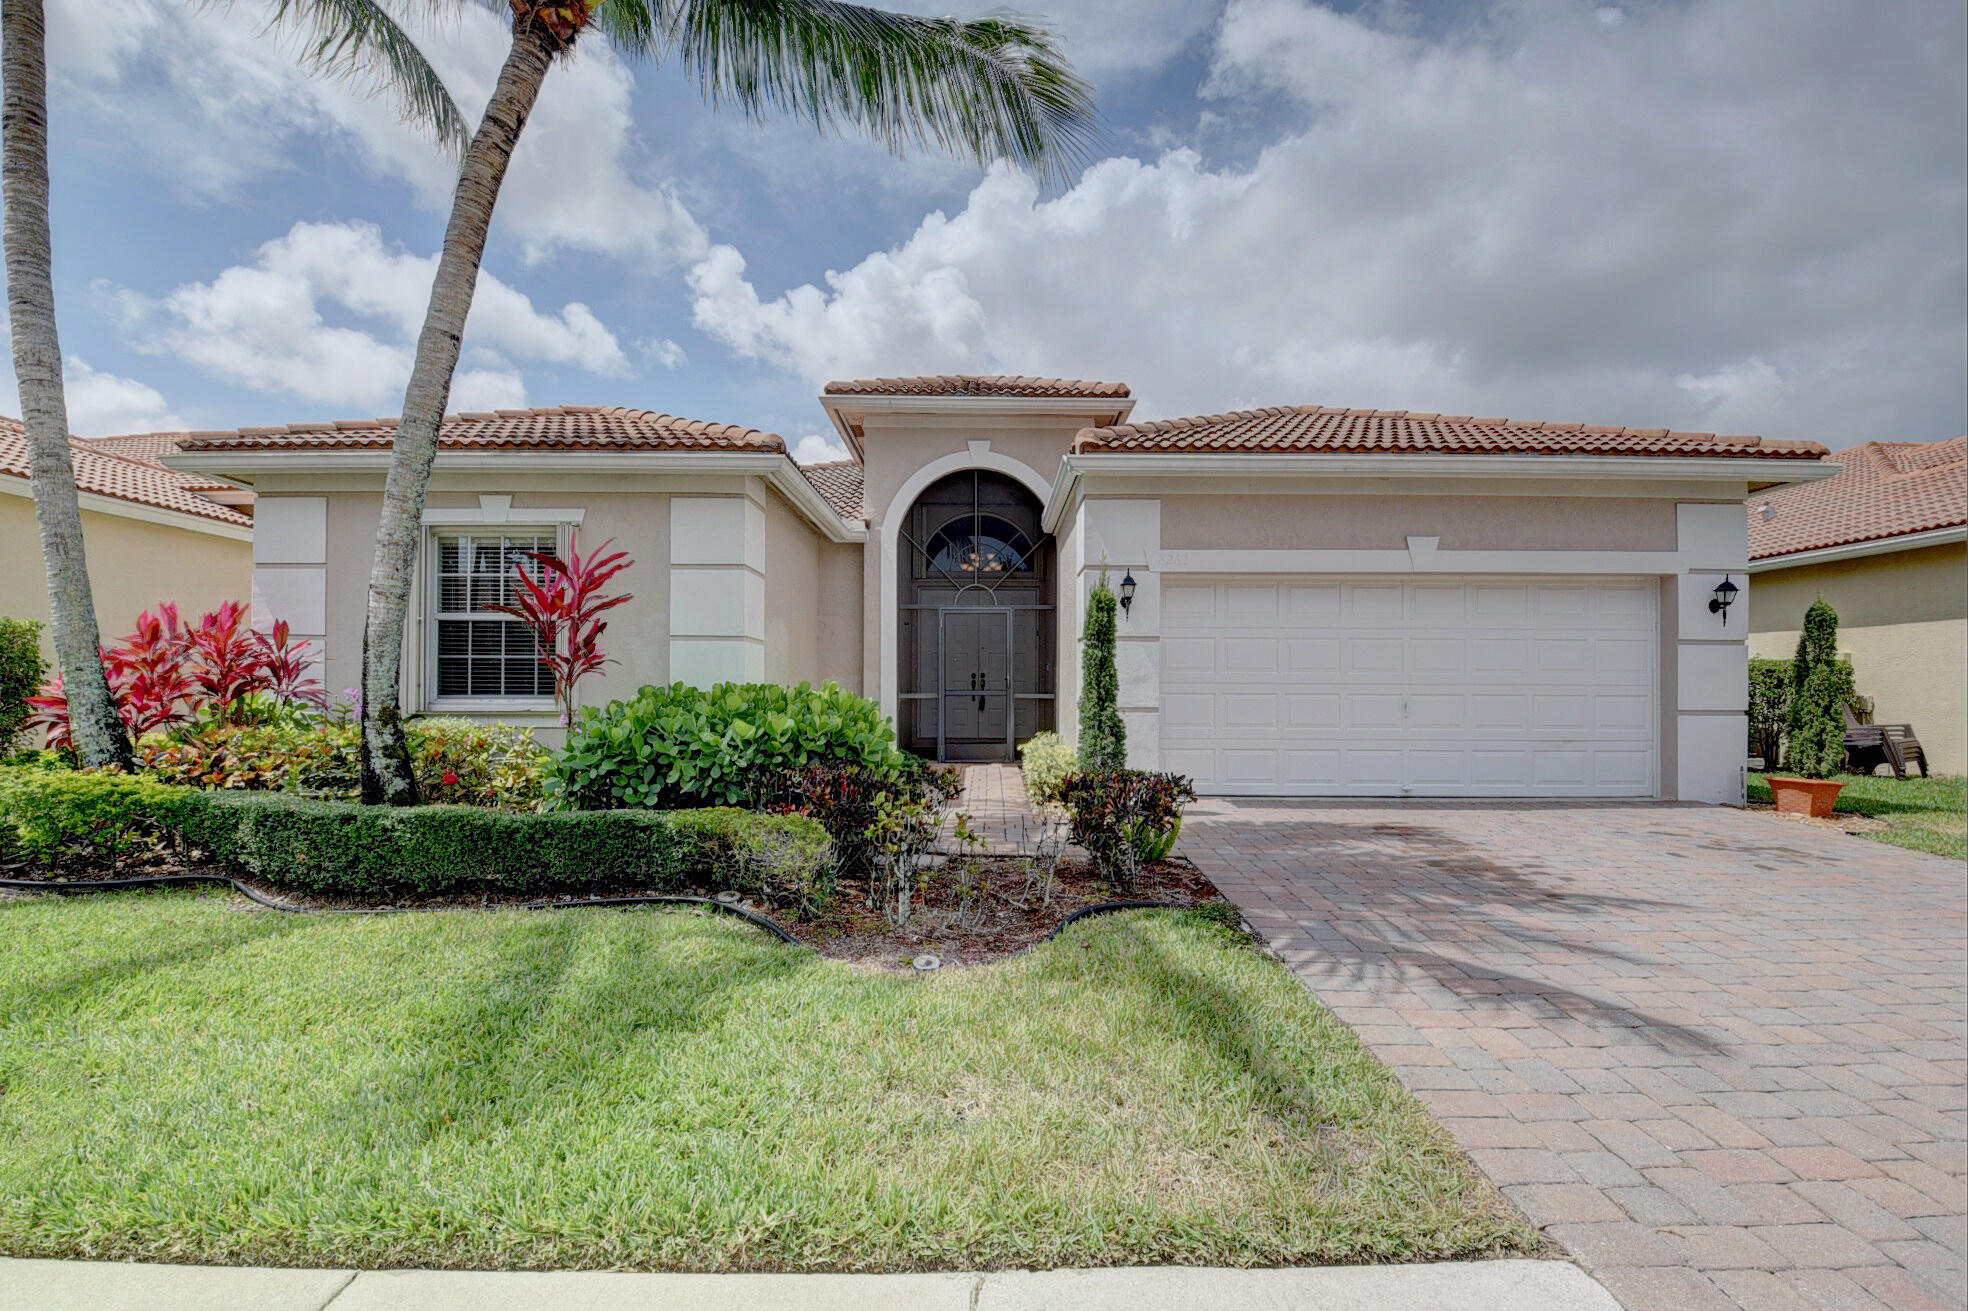 8262  Pine Cay   For Sale 10720600, FL